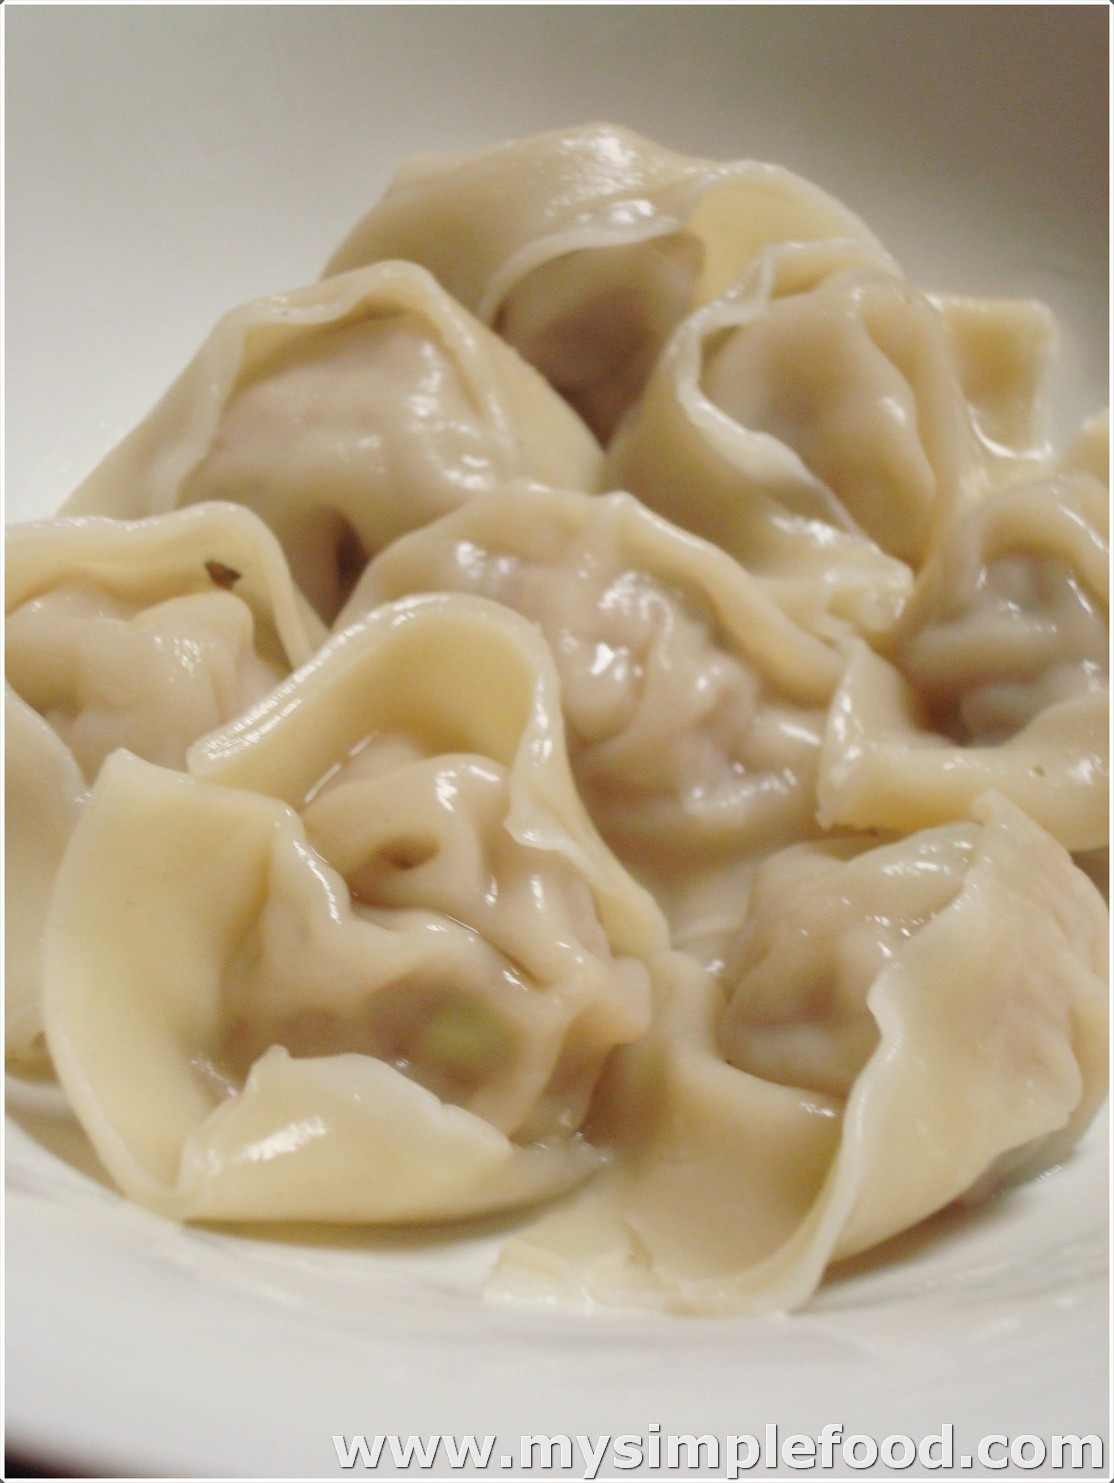 How To Make Chinese Dumplings With Wonton Wrappers | Apps Directories